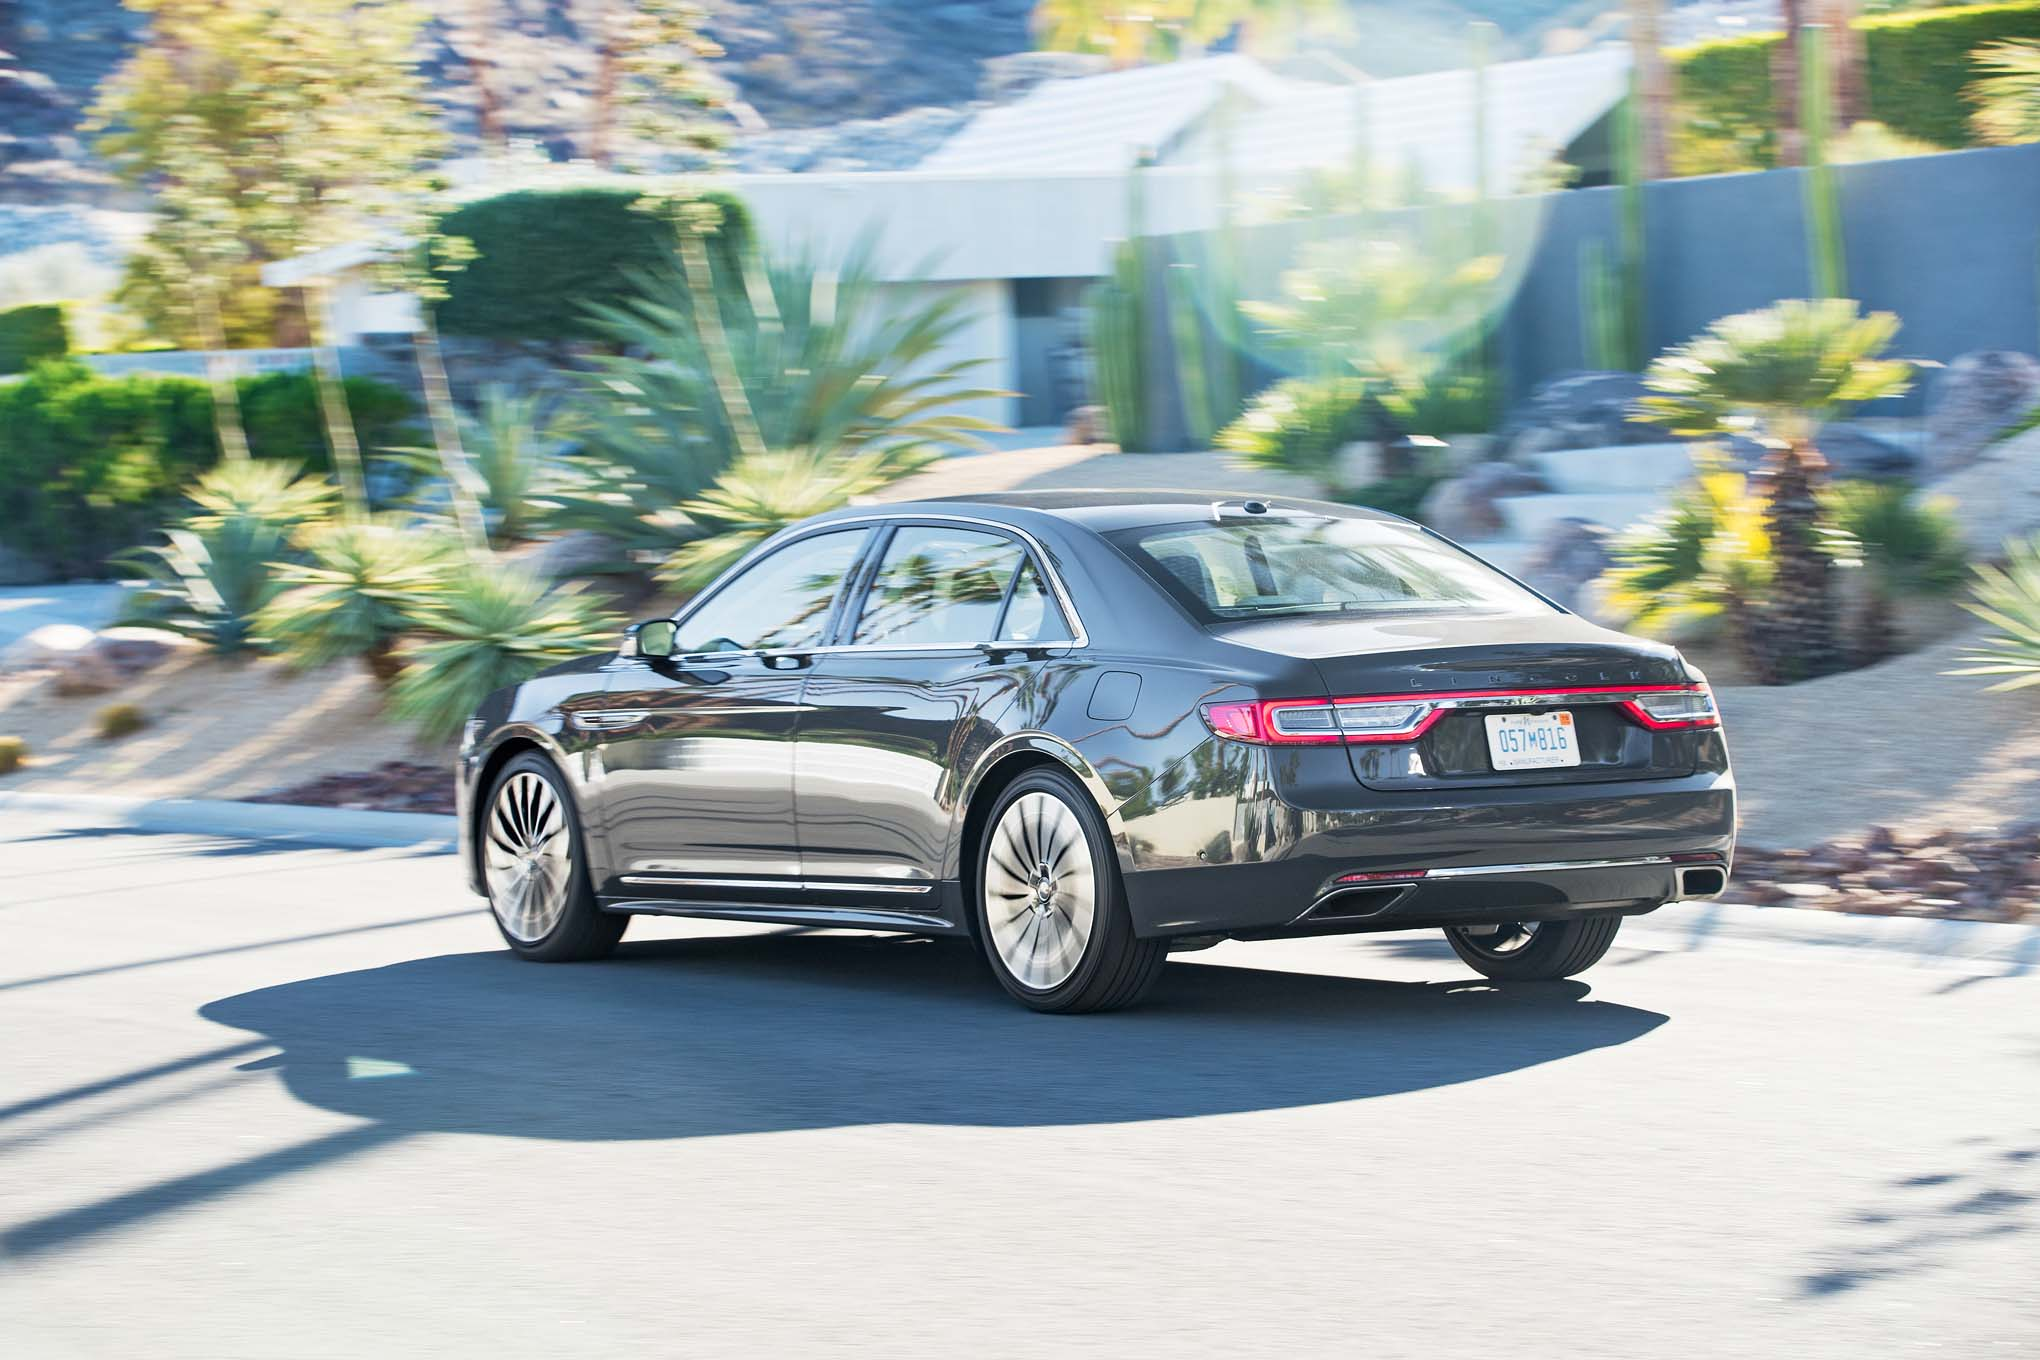 2017 Lincoln Continental Test Drive Rear And Side View (Photo 37 of 41)